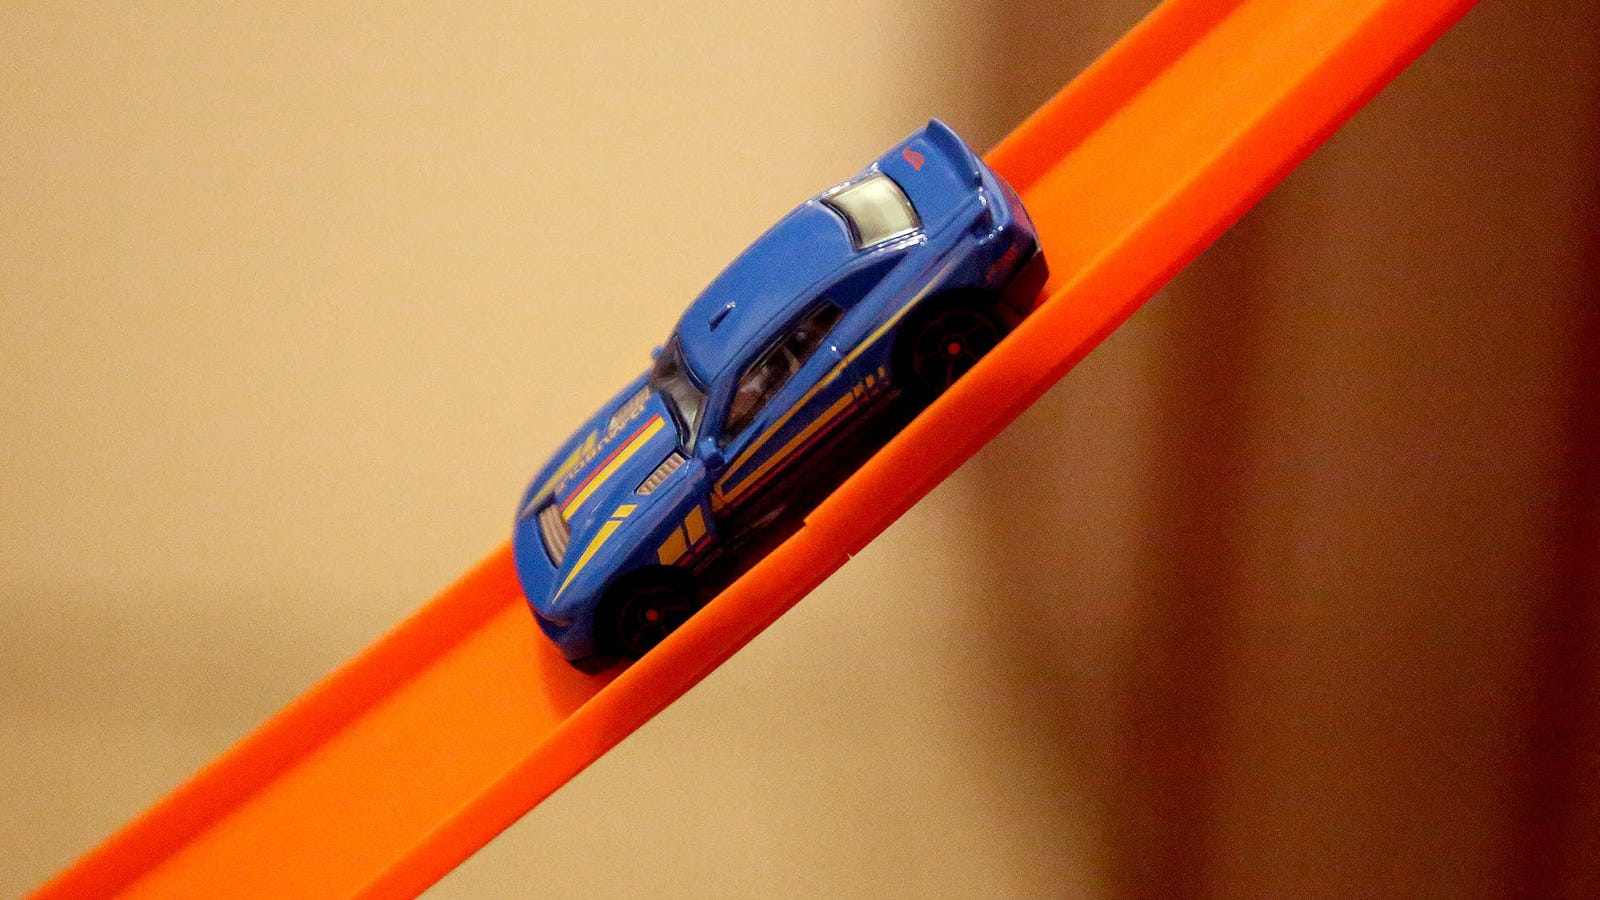 Hot Wheels Ranked Number One Toy For Rolling Down Ramp